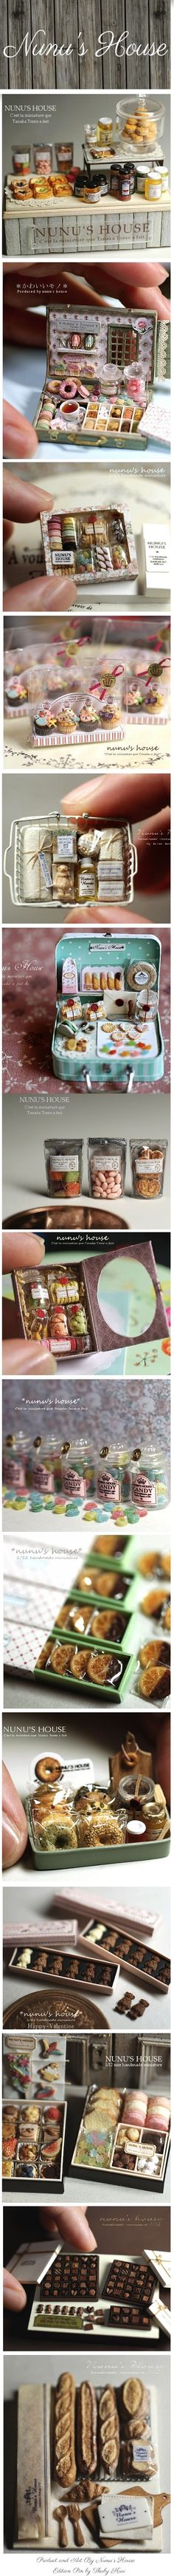 "ただただすごいです!FANTASTIC ""MINIATURE PACKAGING""  (By Nunu's House)- #Dollhouse #packaging products ."